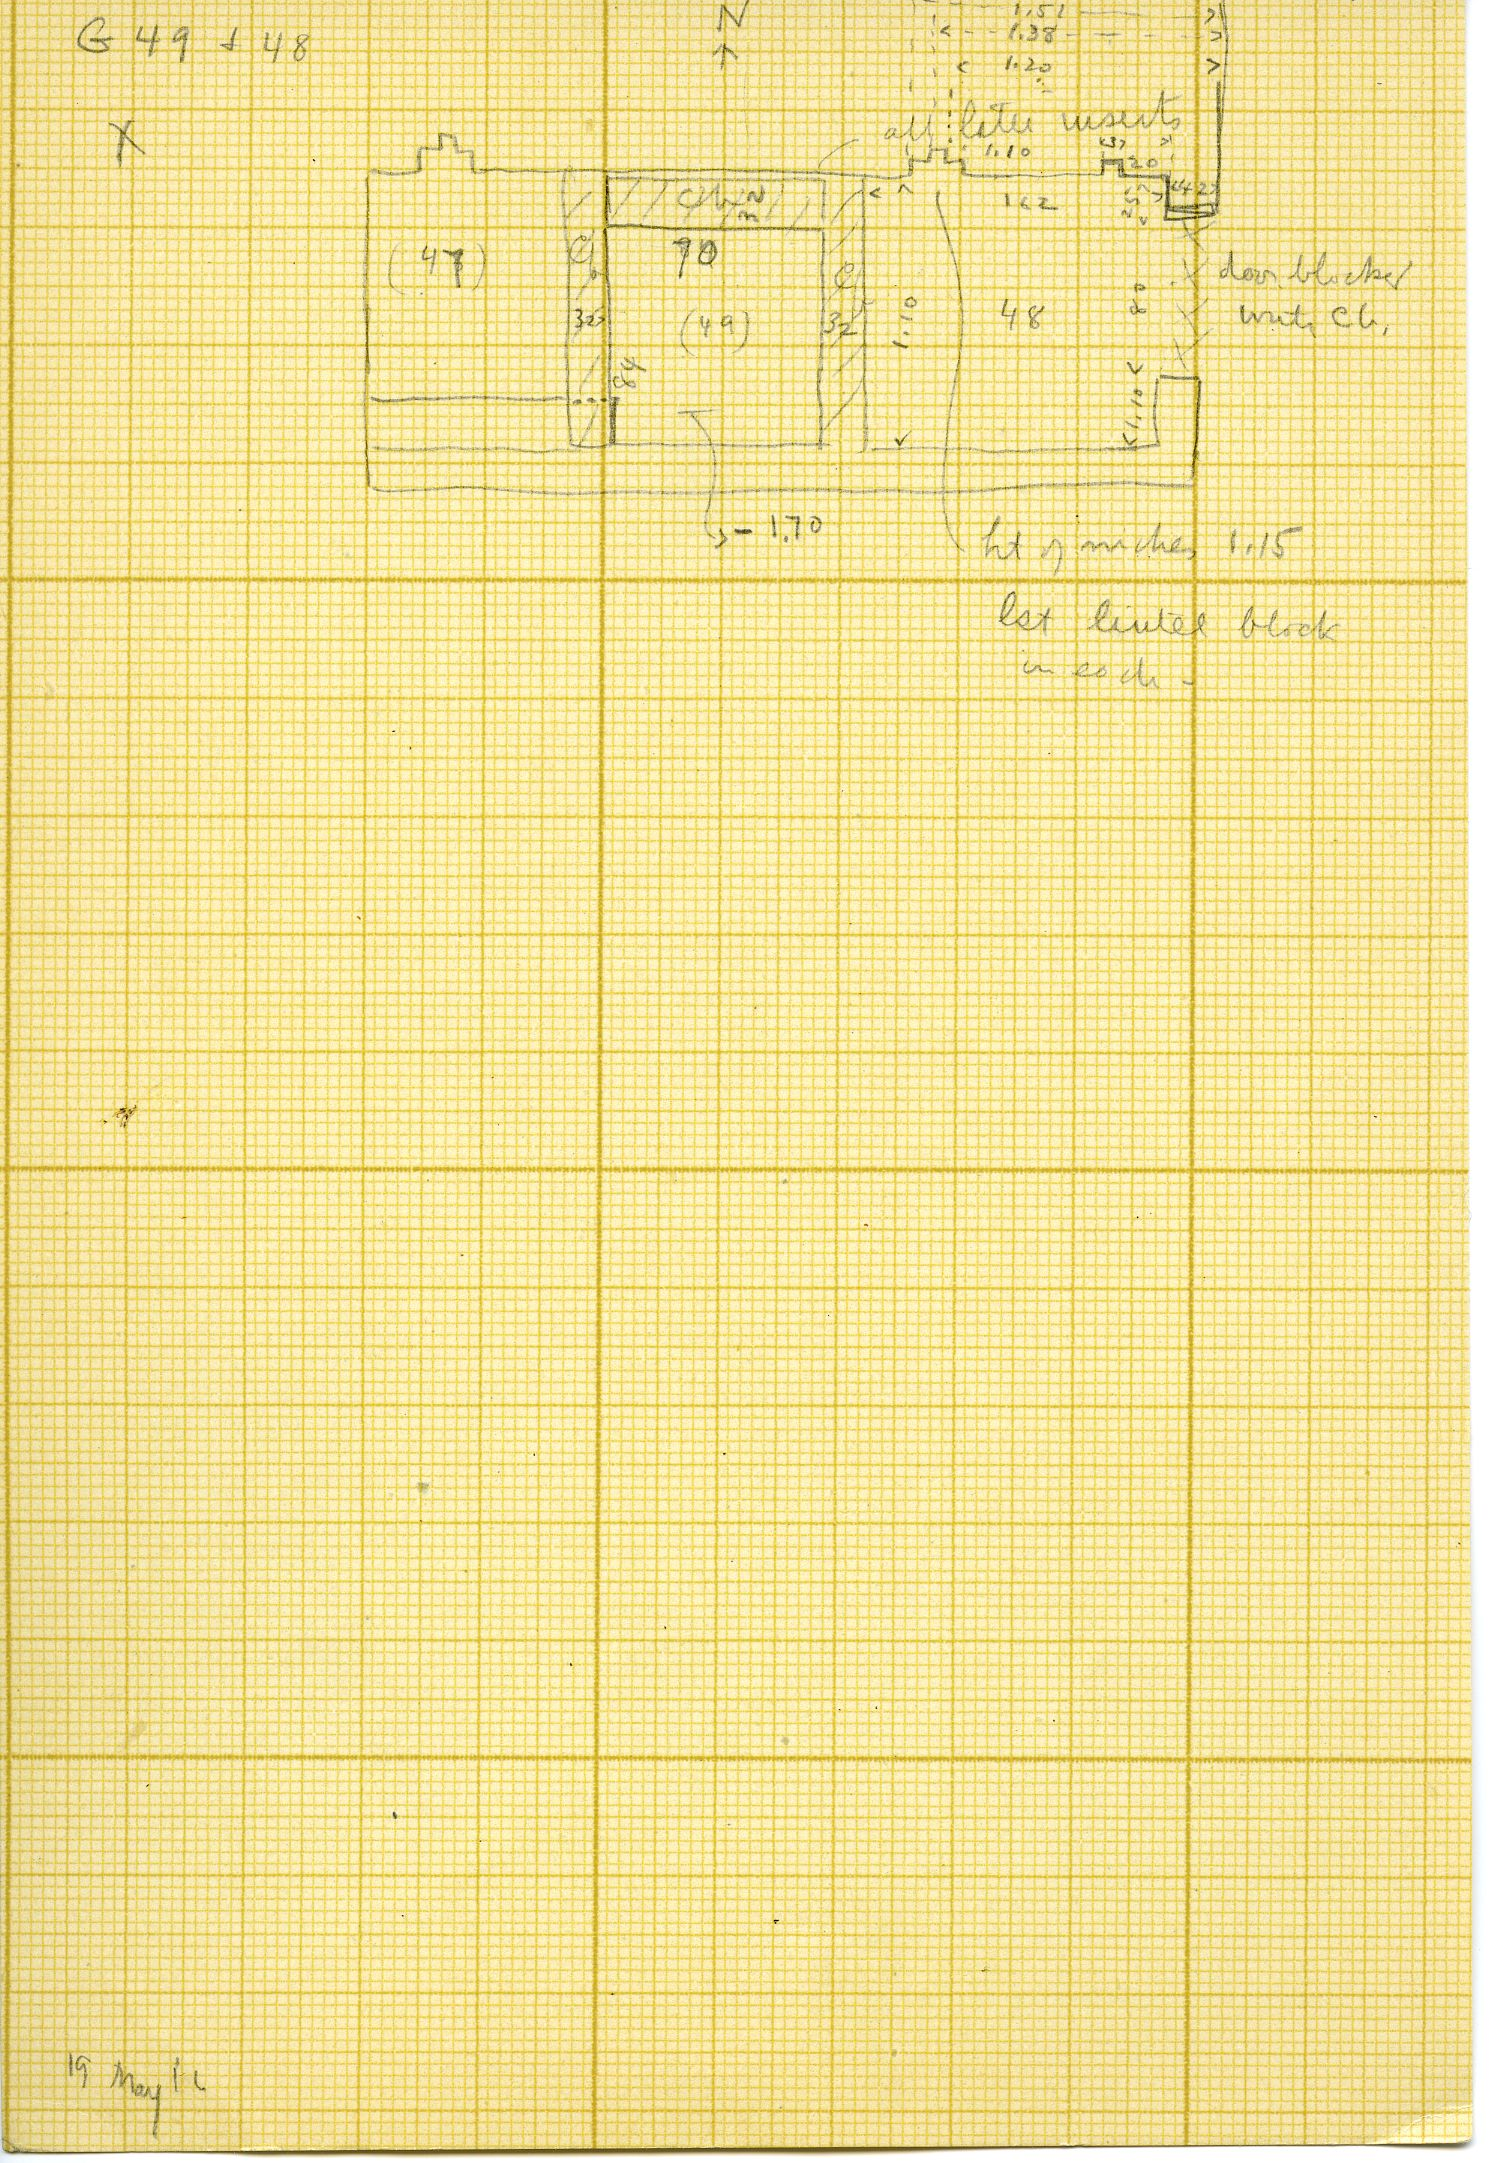 Maps and plans: G 3098, Plan